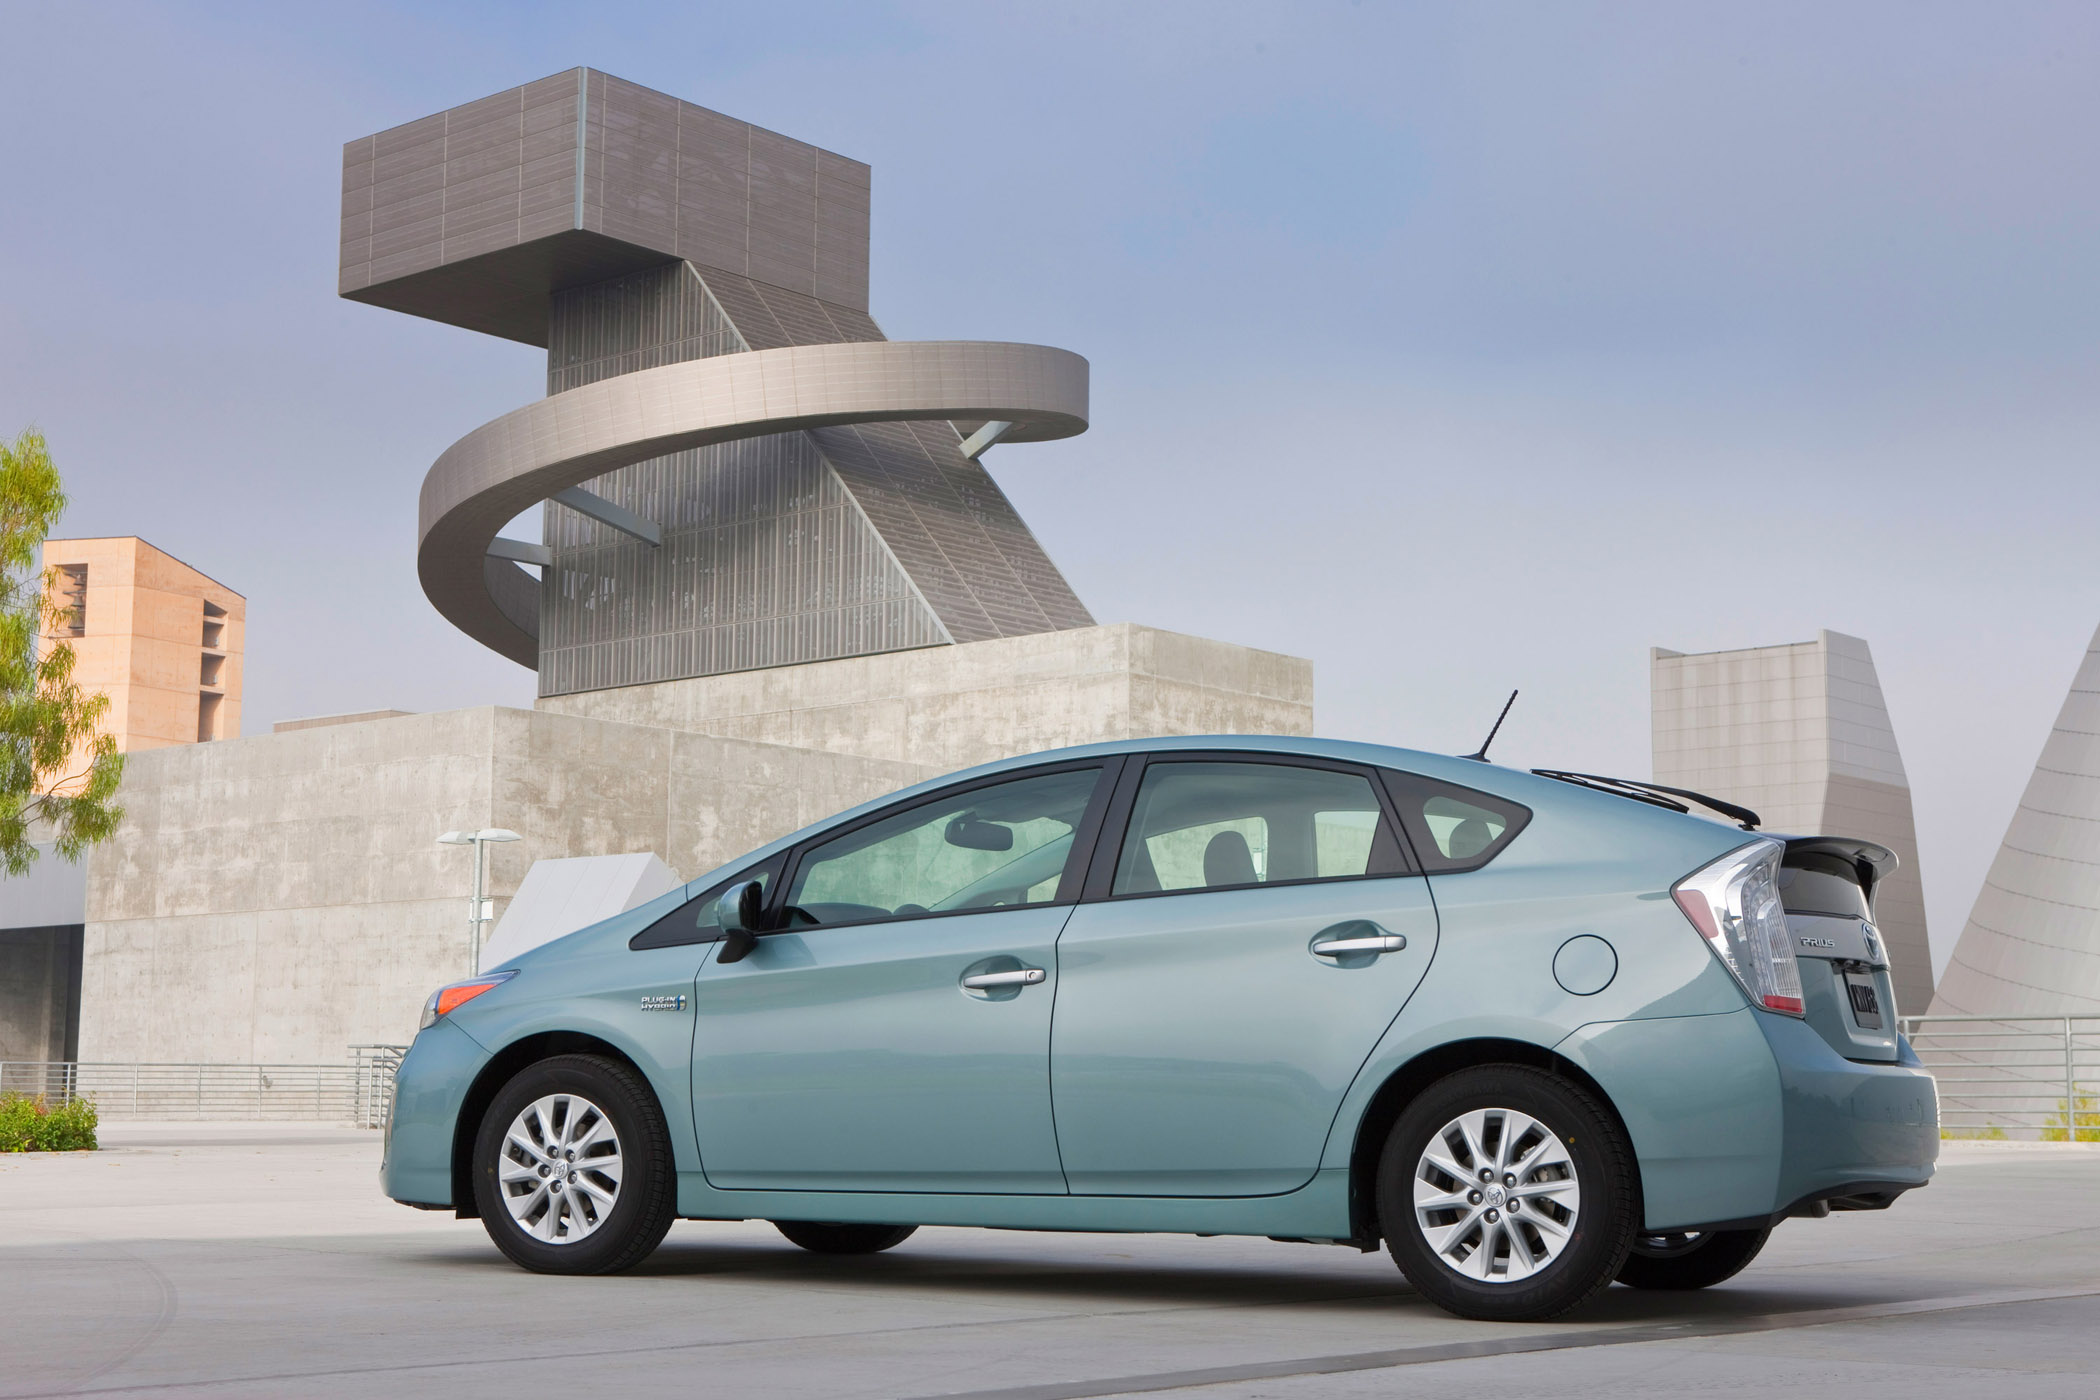 Manufacturer photo: Electric Vehicles starting to steam-roll into the automotive marketplace include the 2012 Mitsubishi iMiEV and the 2012 Toyota Prius Plug-in.